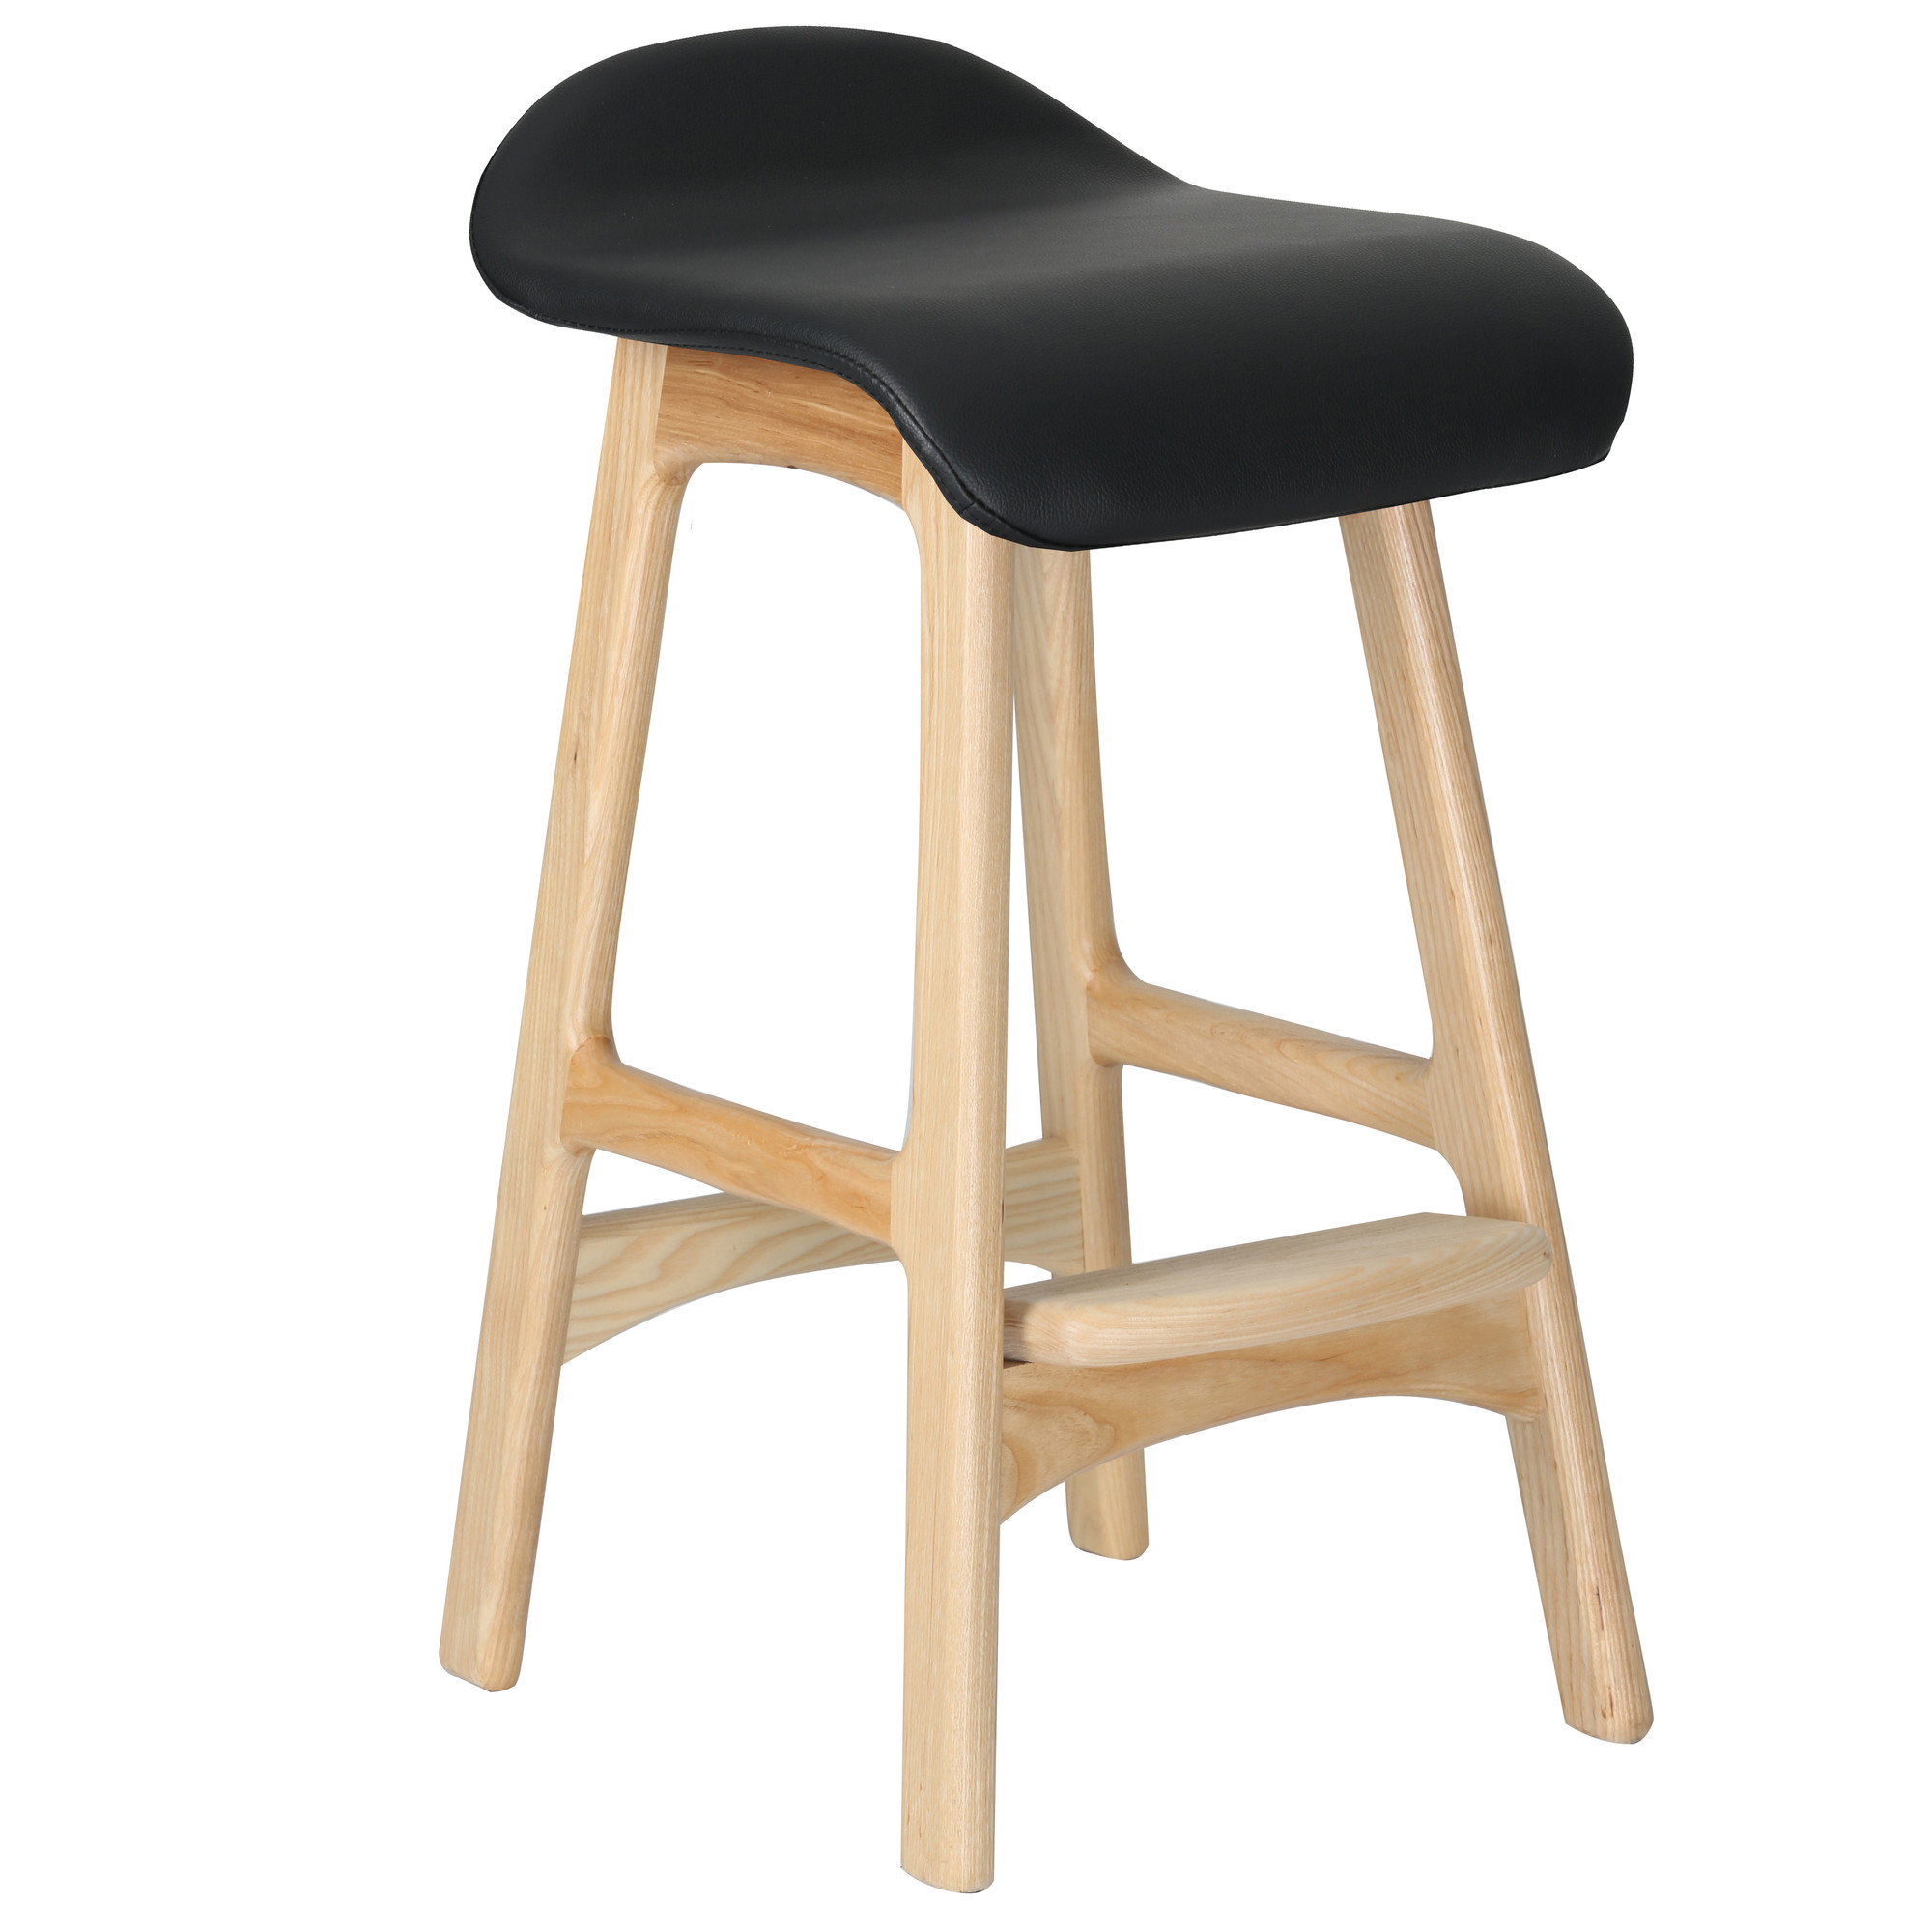 New erik buch replica barstool ebay - Erik buch bar stool ...